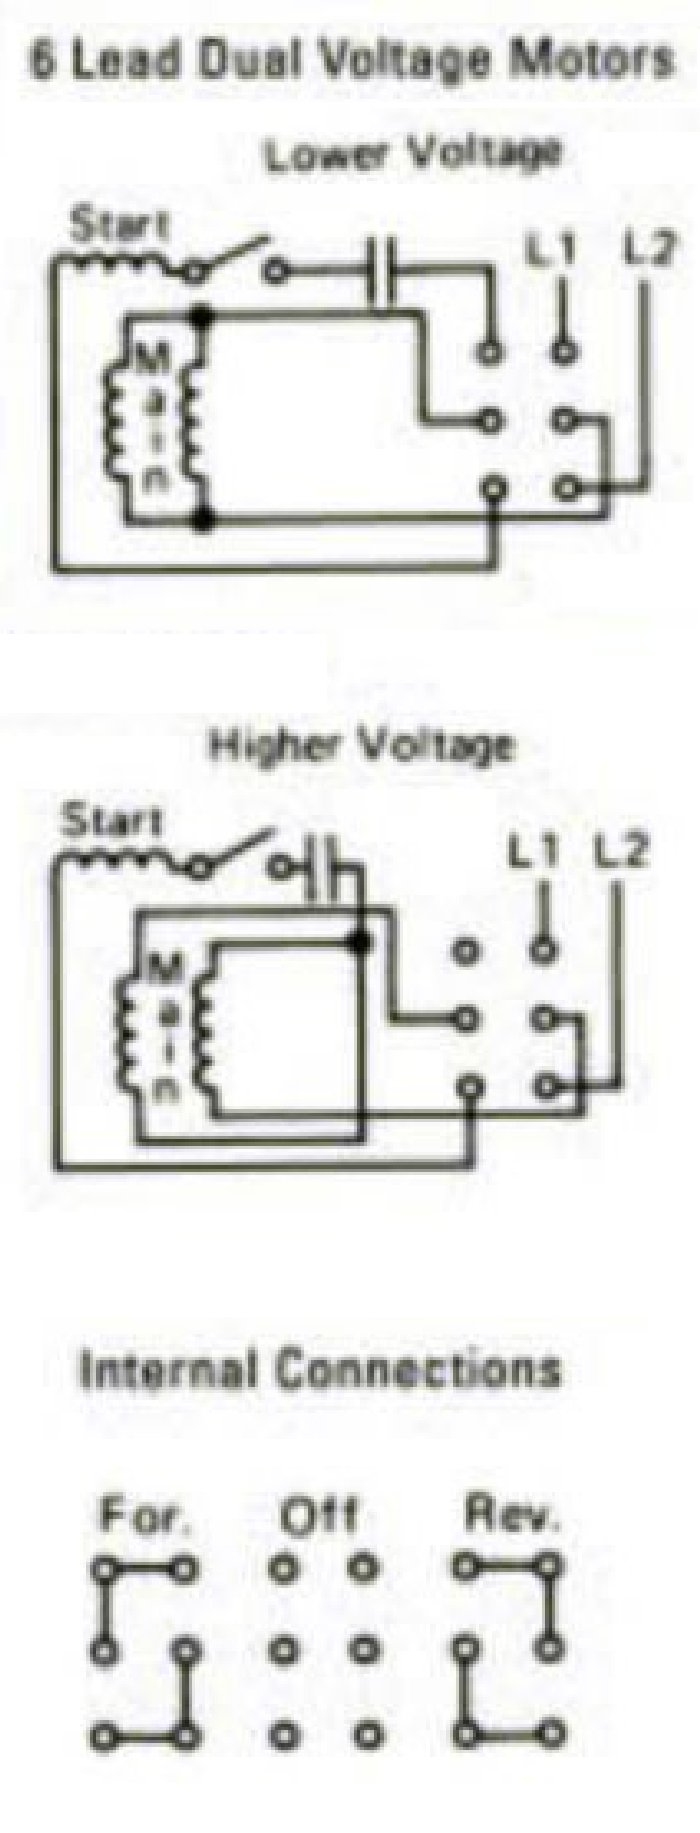 6 lead drum sw wiring?resize=665%2C1741 salzer boat lift switch wiring diagram the best wiring diagram 2017 salzer boat lift switch wiring diagram at readyjetset.co